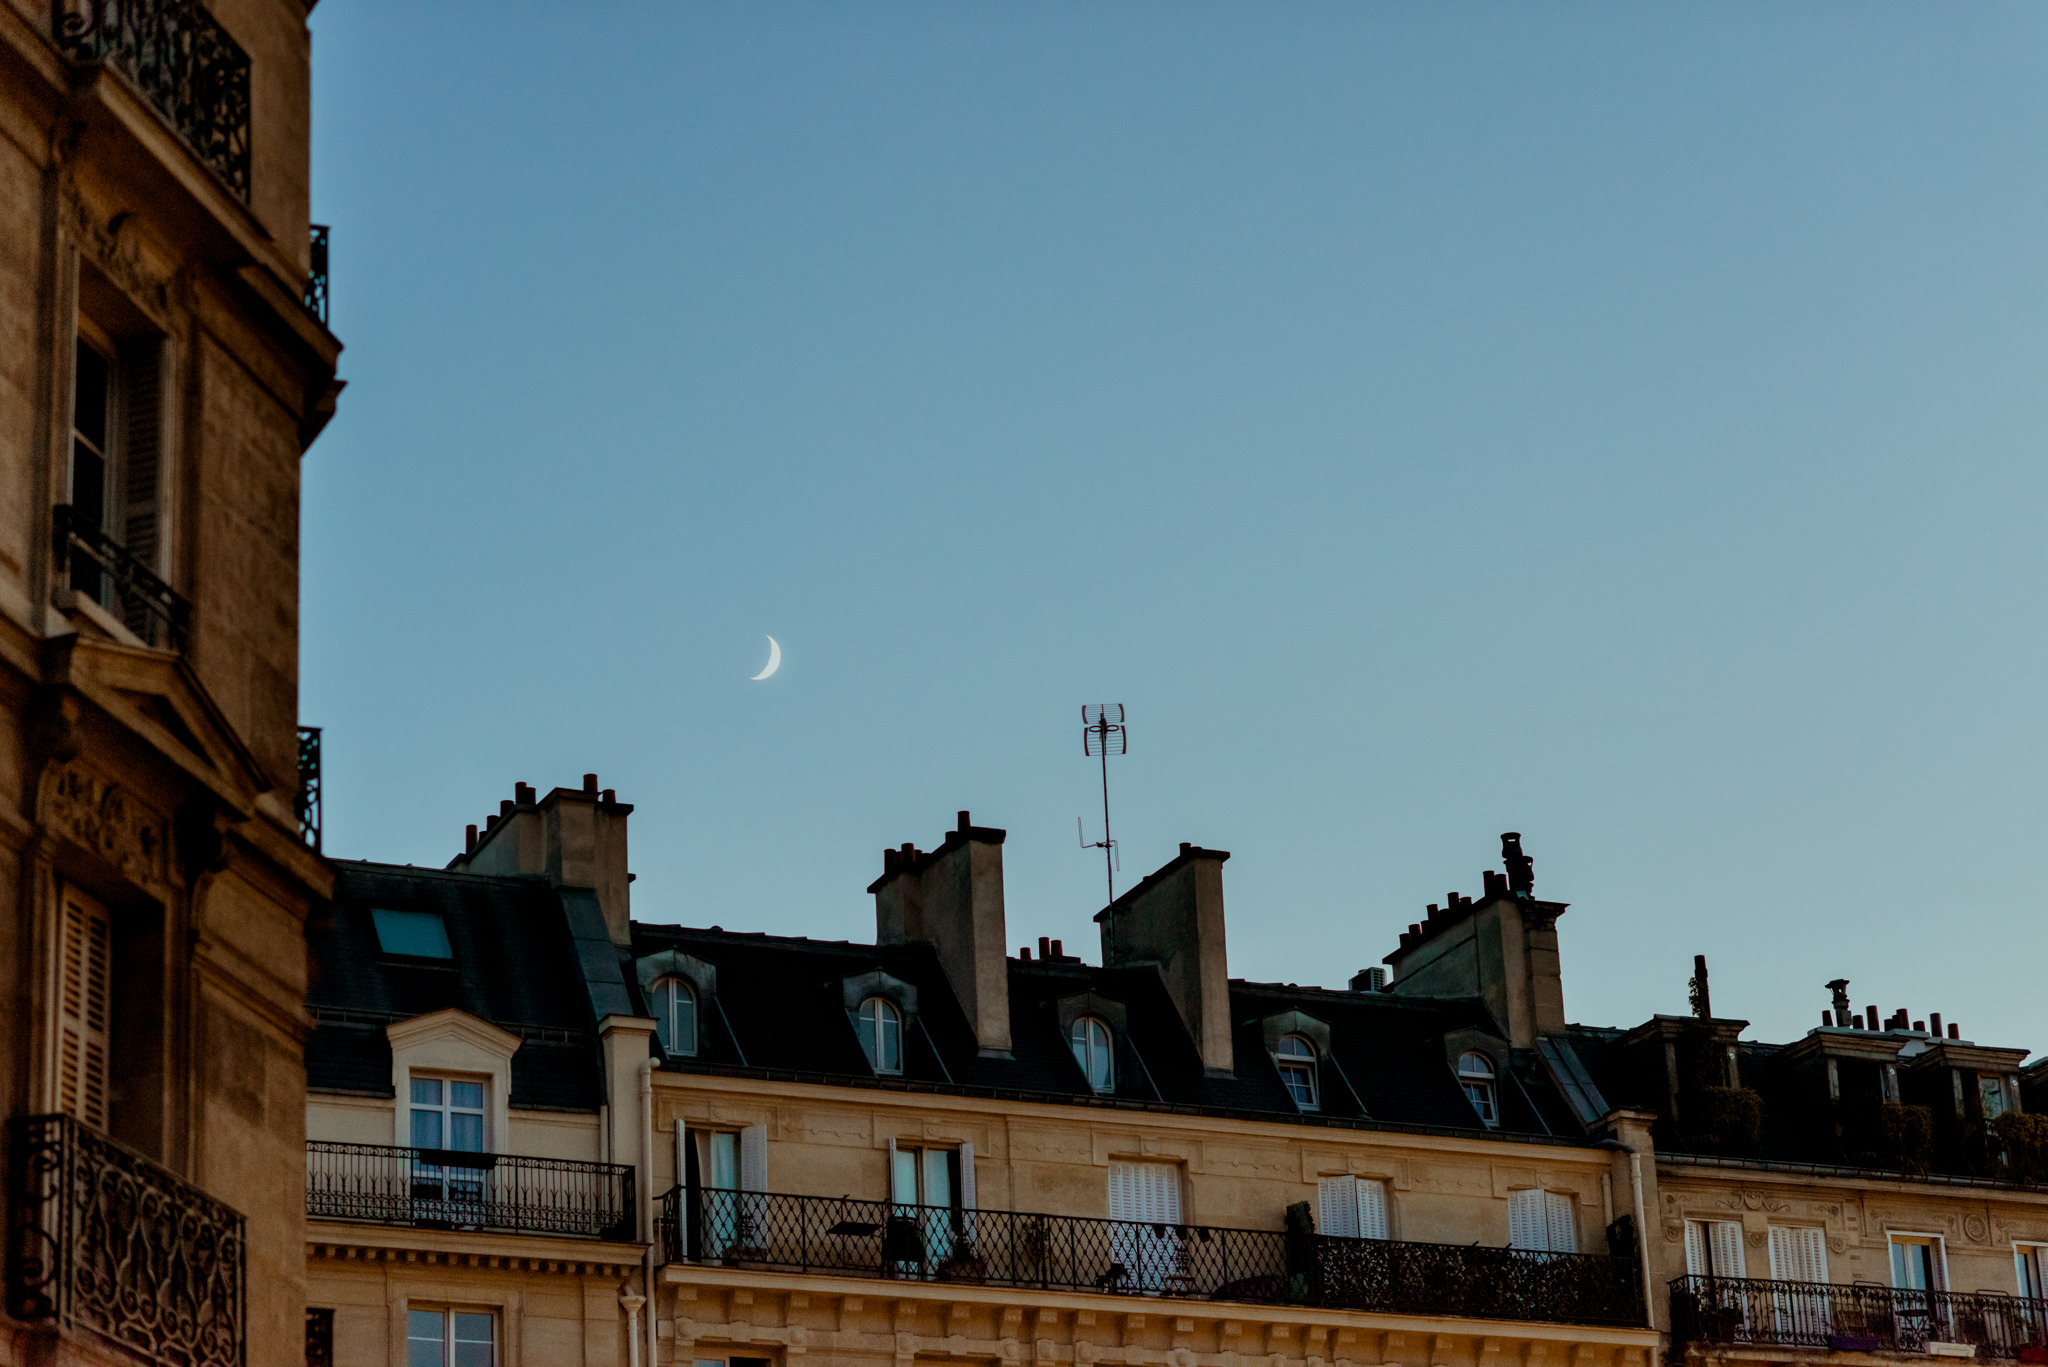 The moon rising over the walls of the Louvre, Paris.